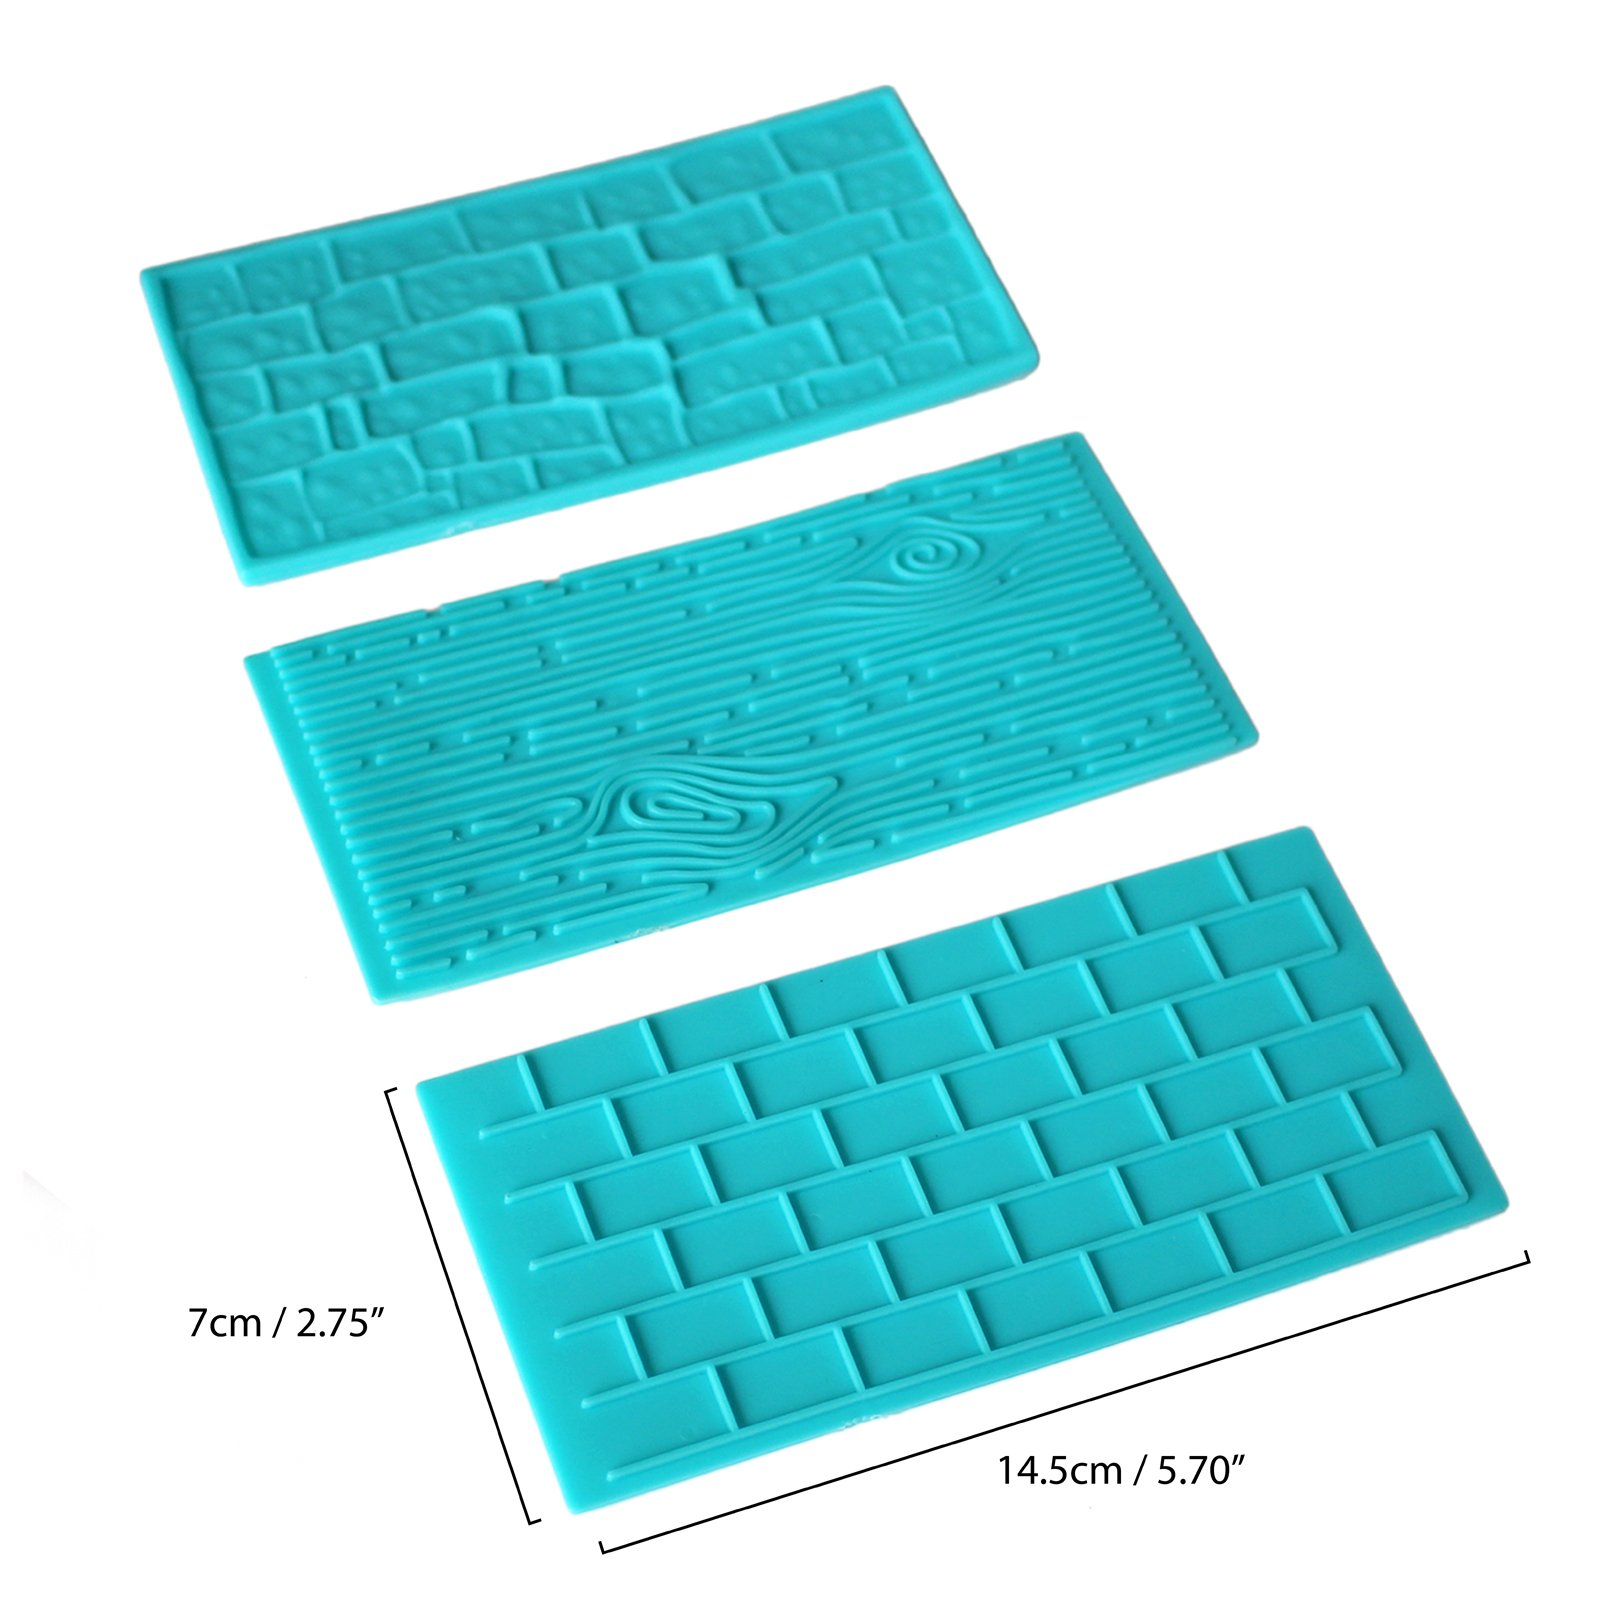 4pc Plastic Embossed Icing Moulds Kits by Kurtzy - Brick, Wood, Cobble and Pebble Stone Designs for Chocolate and Icing - Easy to clean - Perfect for Cake Edging,Cupcakes and Biscuits - Mould Sheets by Kurtzy (Image #2)